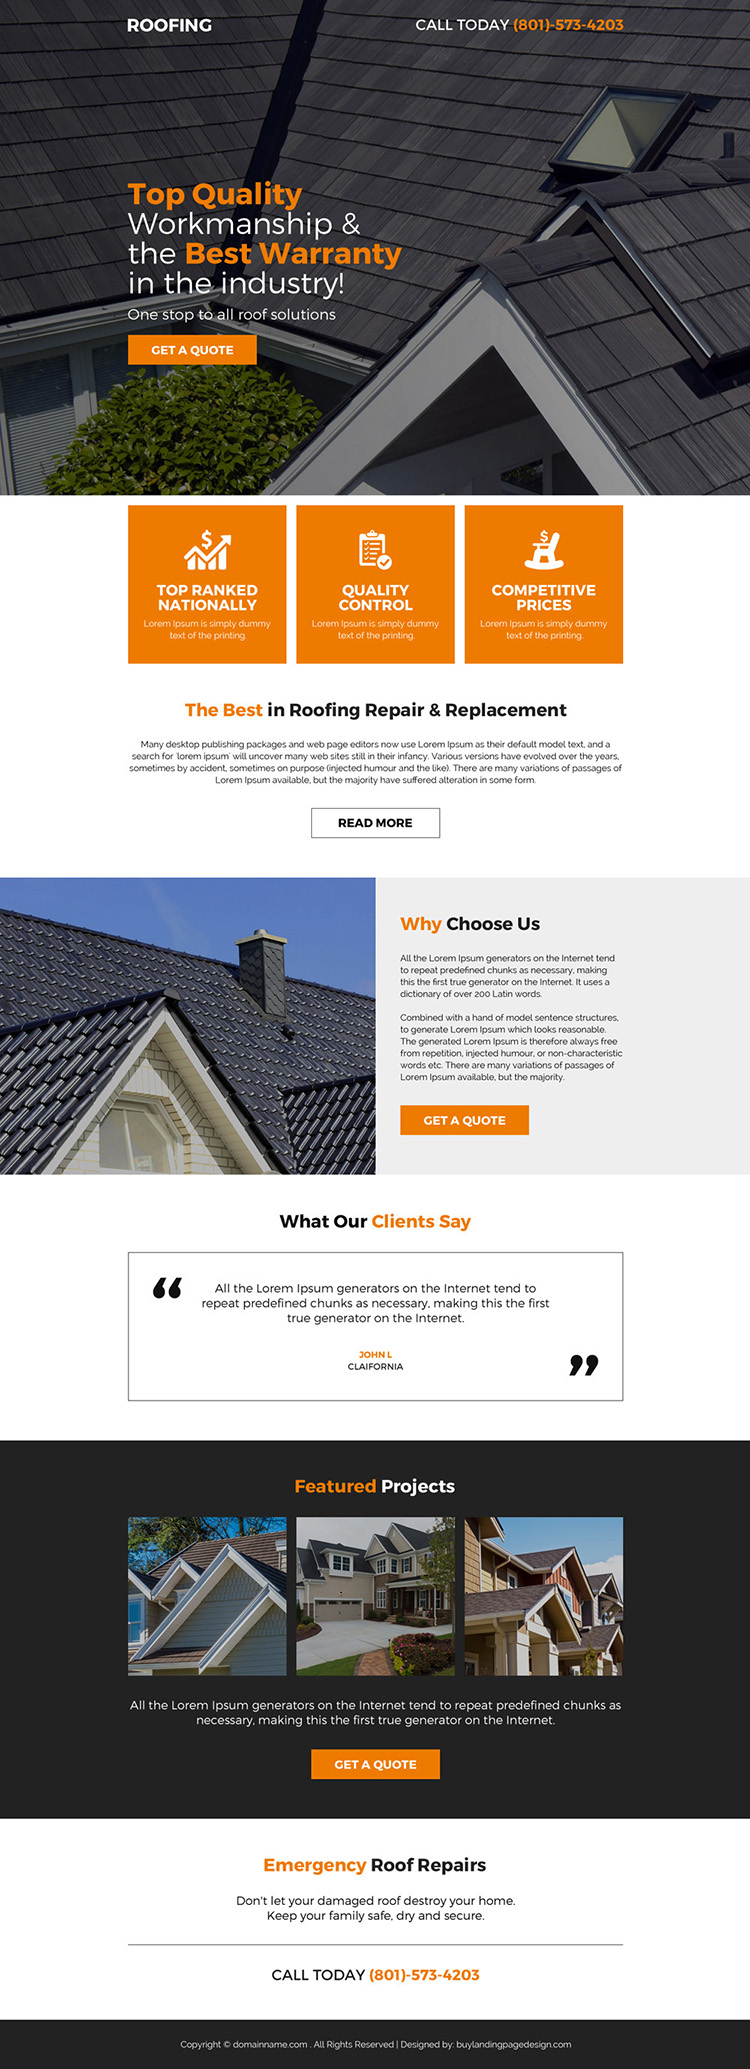 quality roofing service responsive pay per click landing page